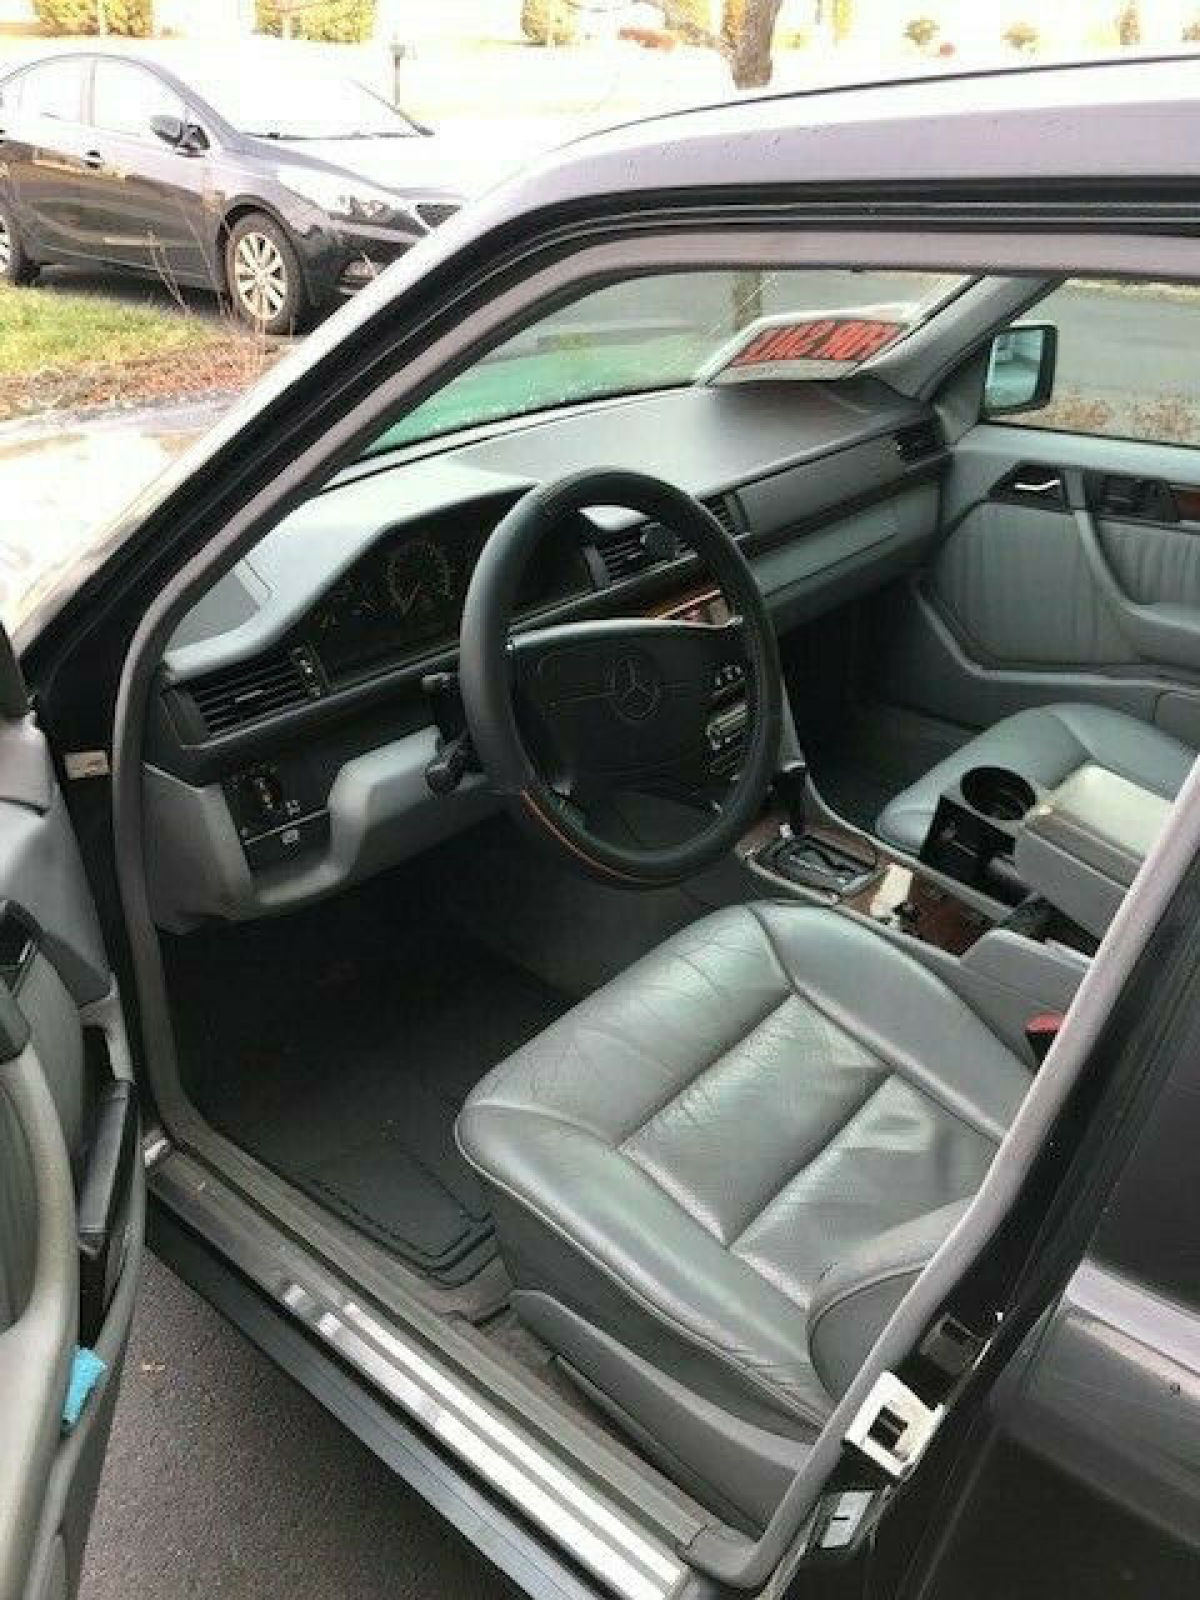 1994 mercedes e320 sedan 155k miles auto gray exterior gray leather interior for sale mercedes benz e class 1994 for sale in stafford virginia united states 1994 mercedes e320 sedan 155k miles auto gray exterior gray leather interior for sale mercedes benz e class 1994 for sale in stafford virginia united states